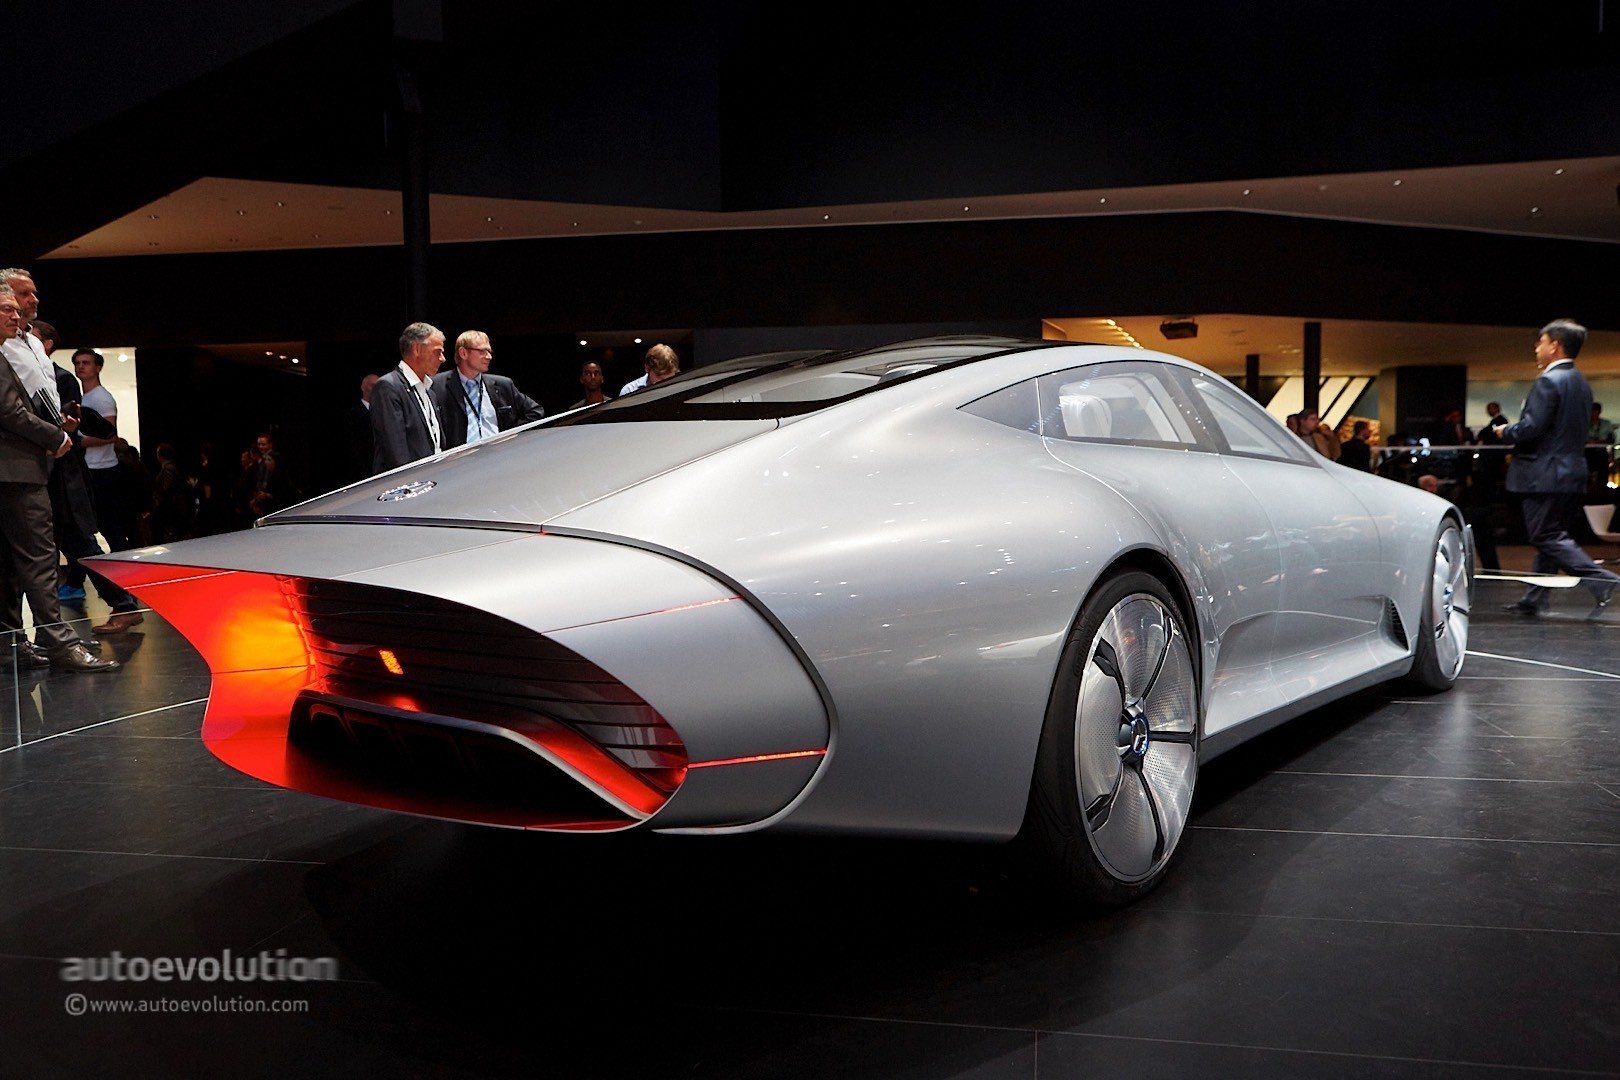 Mercedes Benz Amg >> Mercedes-Benz Concept IAA Storms Frankfurt with Its Morphing Abilities - autoevolution